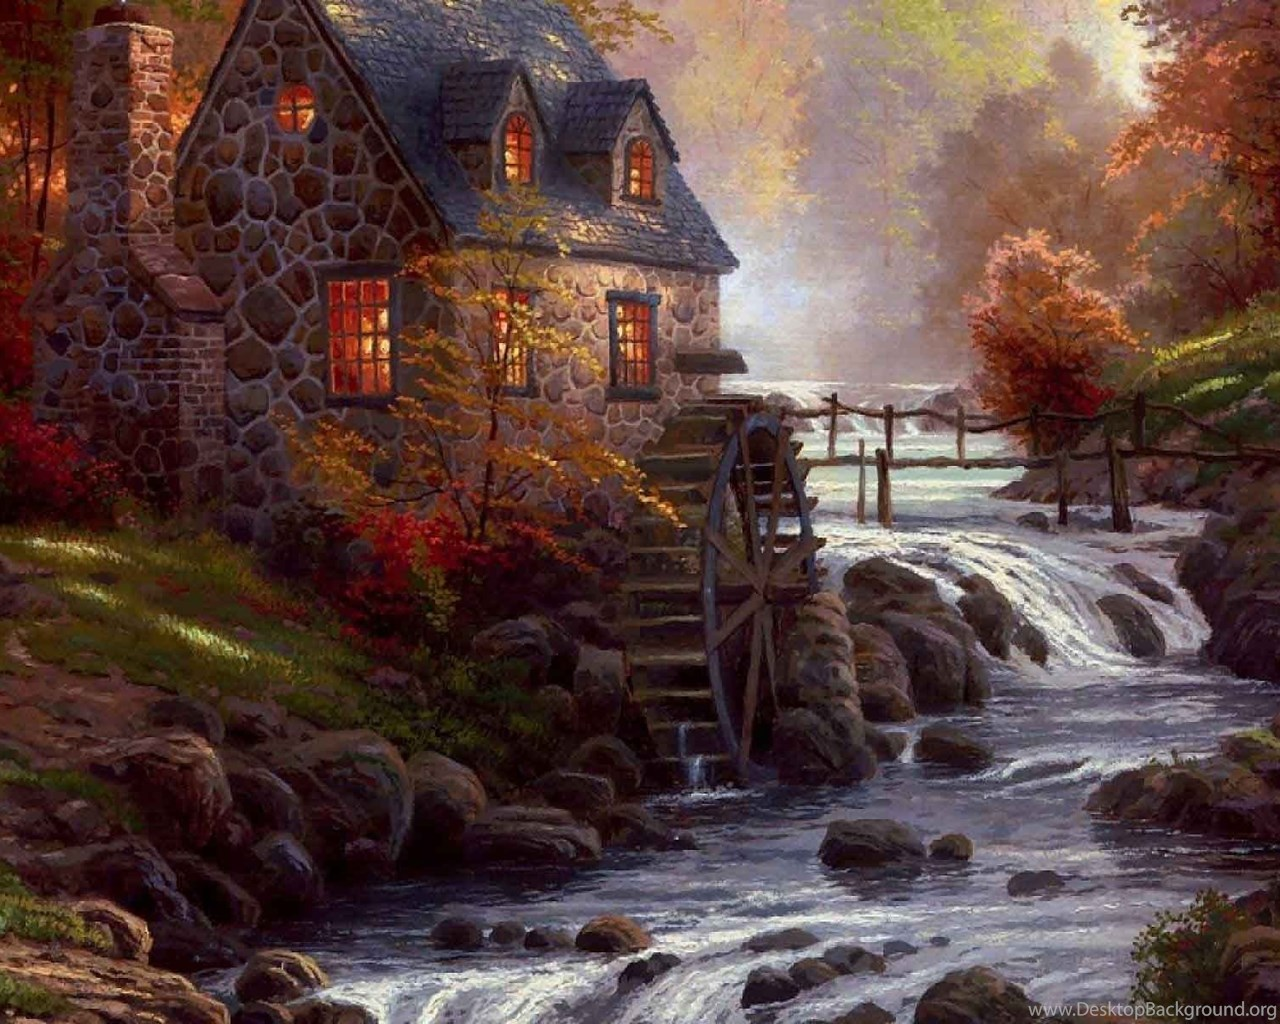 Fall Wallpaper For Iphone 5 Thomas Kinkade Autumn Wallpaper Desktop Background